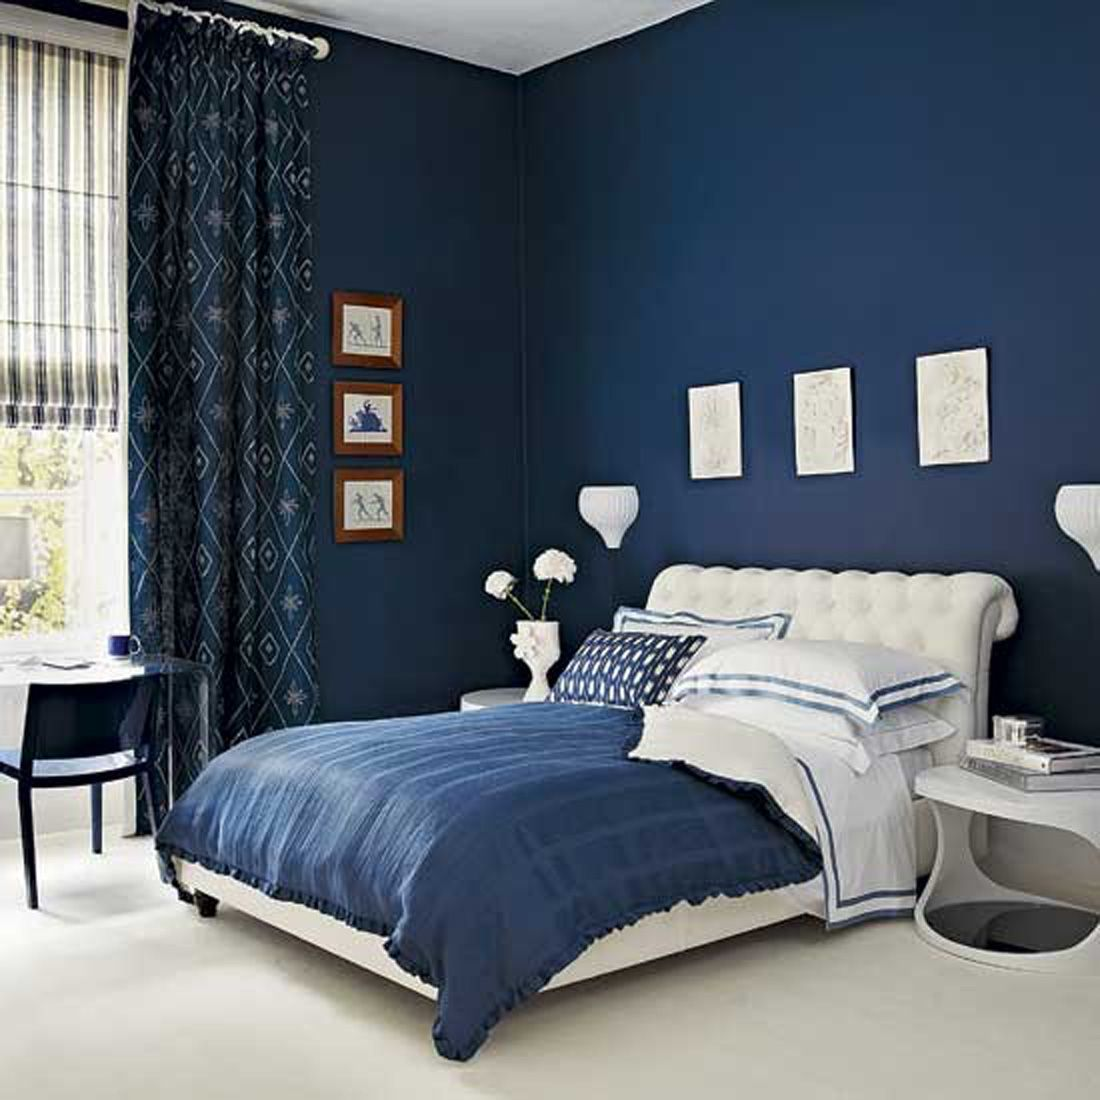 Bedroomdesign  Bedroom Paint Designs New Home Rule ~ Glubdub Beauteous Paint Design For Bedroom Review